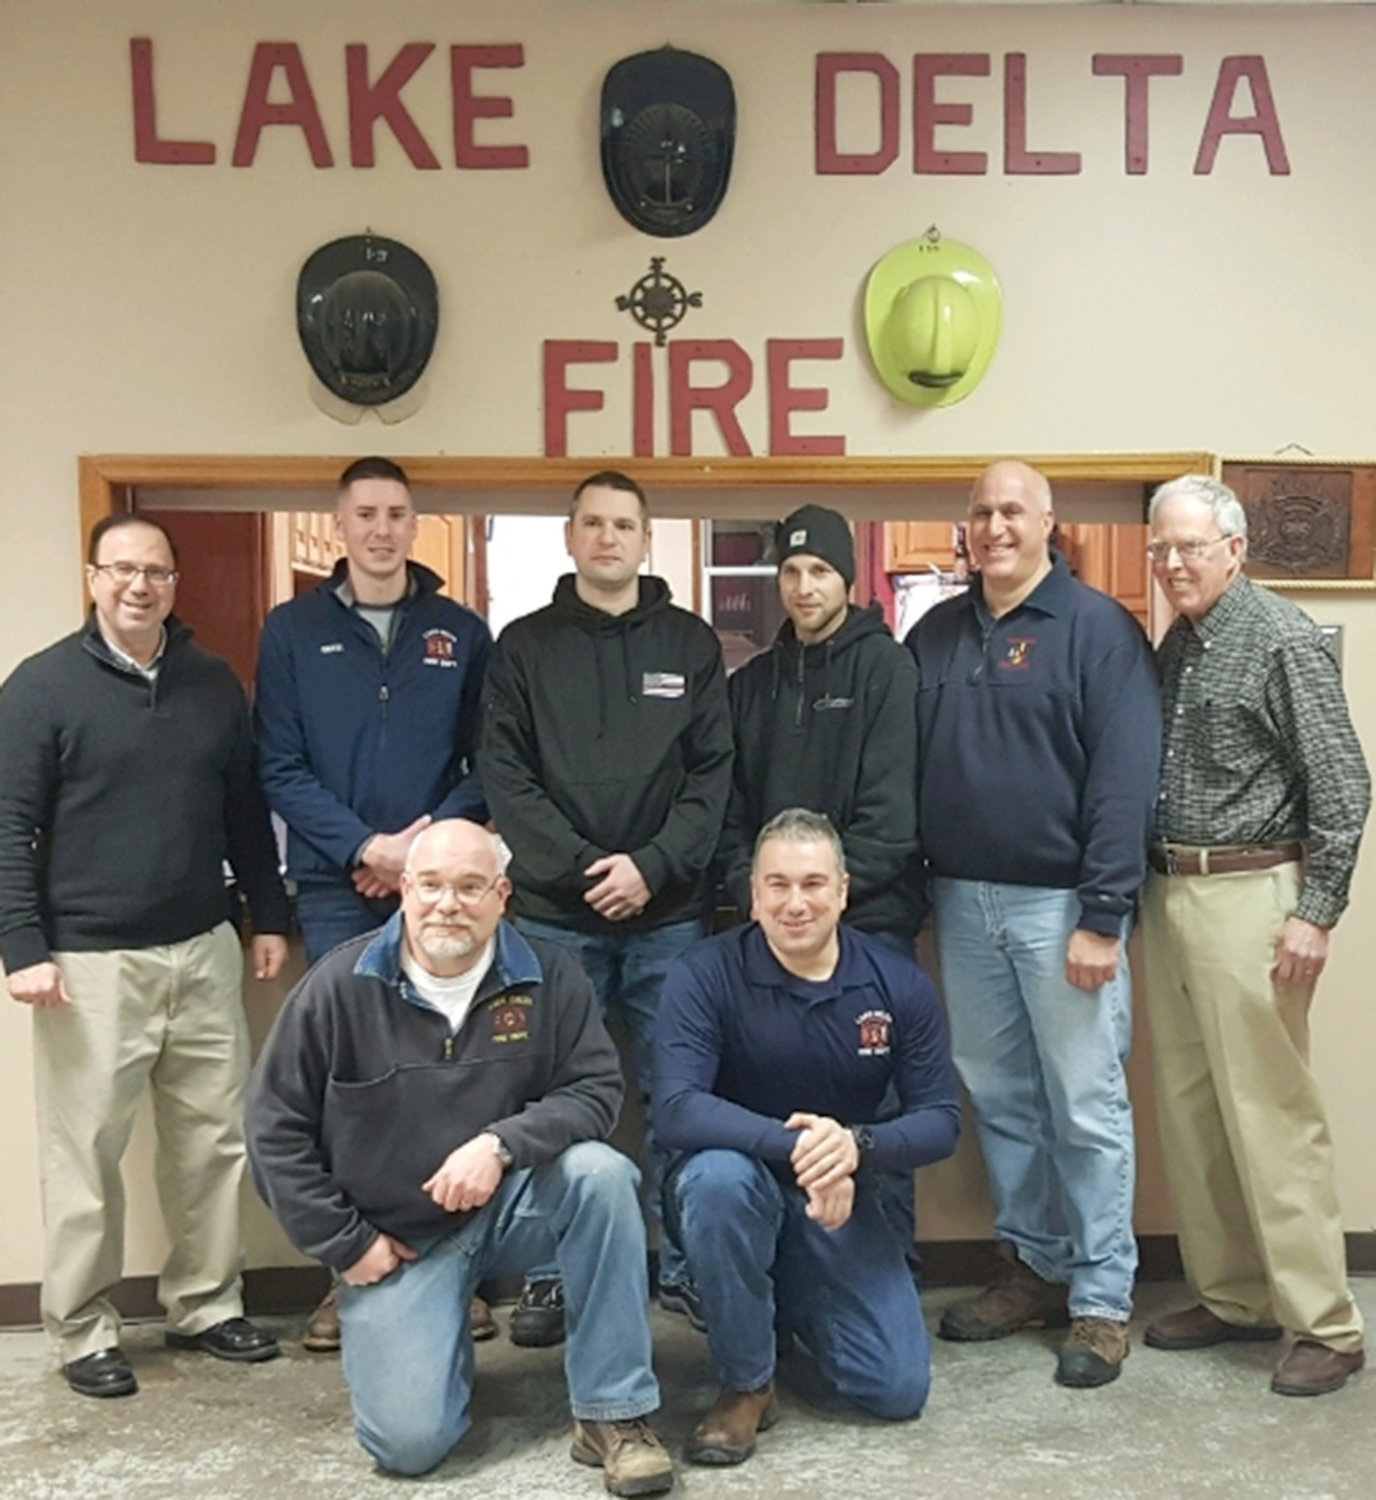 LAKE DELTA VFD OFFICERS — The Lake Delta Volunteer Fire Department has installed fire and civil officers for 2019. In back: State Sen. Joseph Griffo, who swore in the officers; Anthony Gotti, captain; Dan Goldman, lieutenant; Ryan Liebi, captain; Larry Tamburrino, chief; Ed Davis, president. In front: Paul Taylor, assistant chief; Rich Abdou, assistant chief.